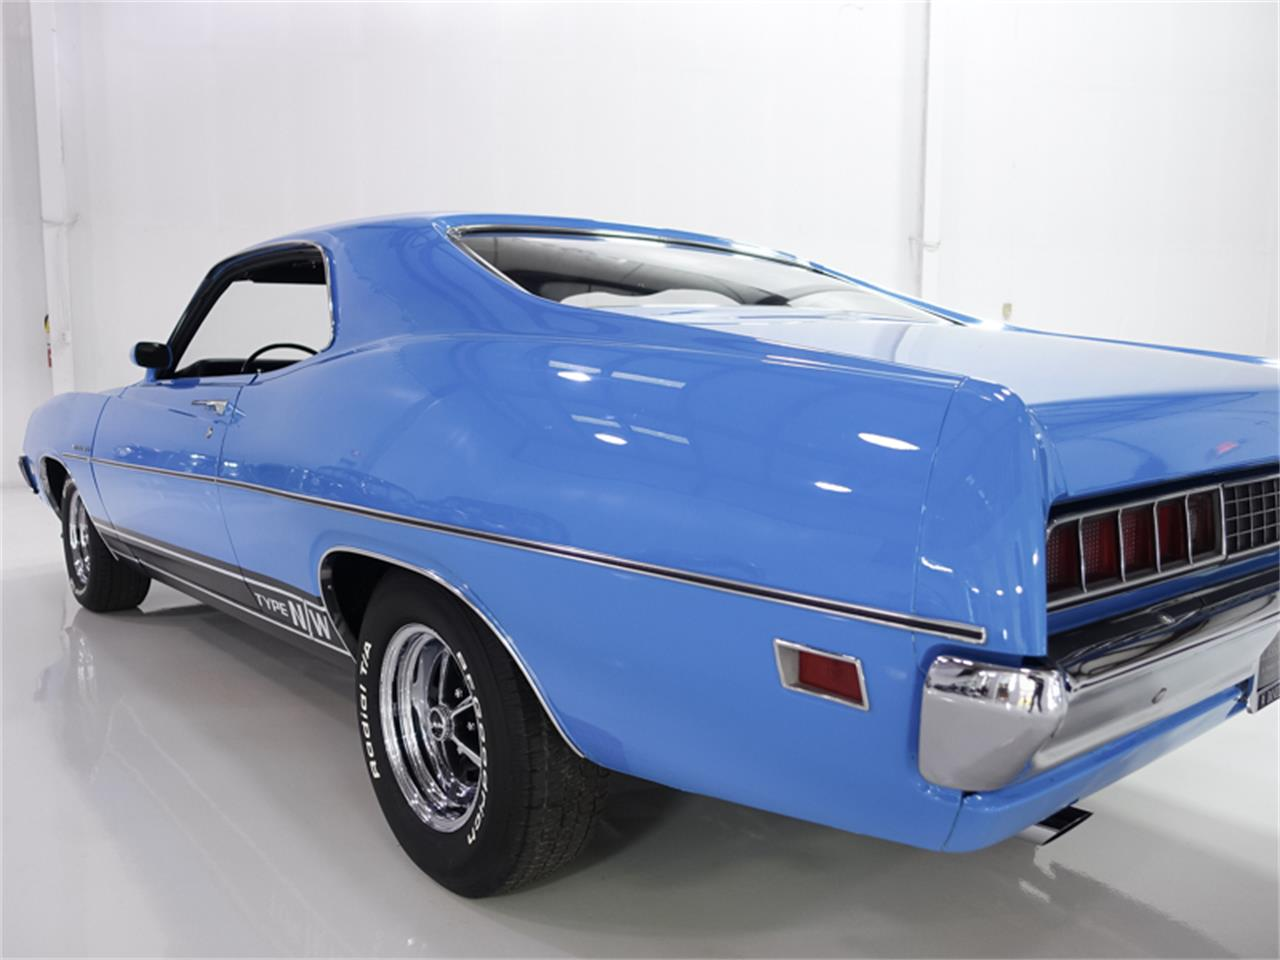 Large Picture of 1970 Torino located in Missouri - $59,900.00 Offered by Daniel Schmitt & Co. - MSON